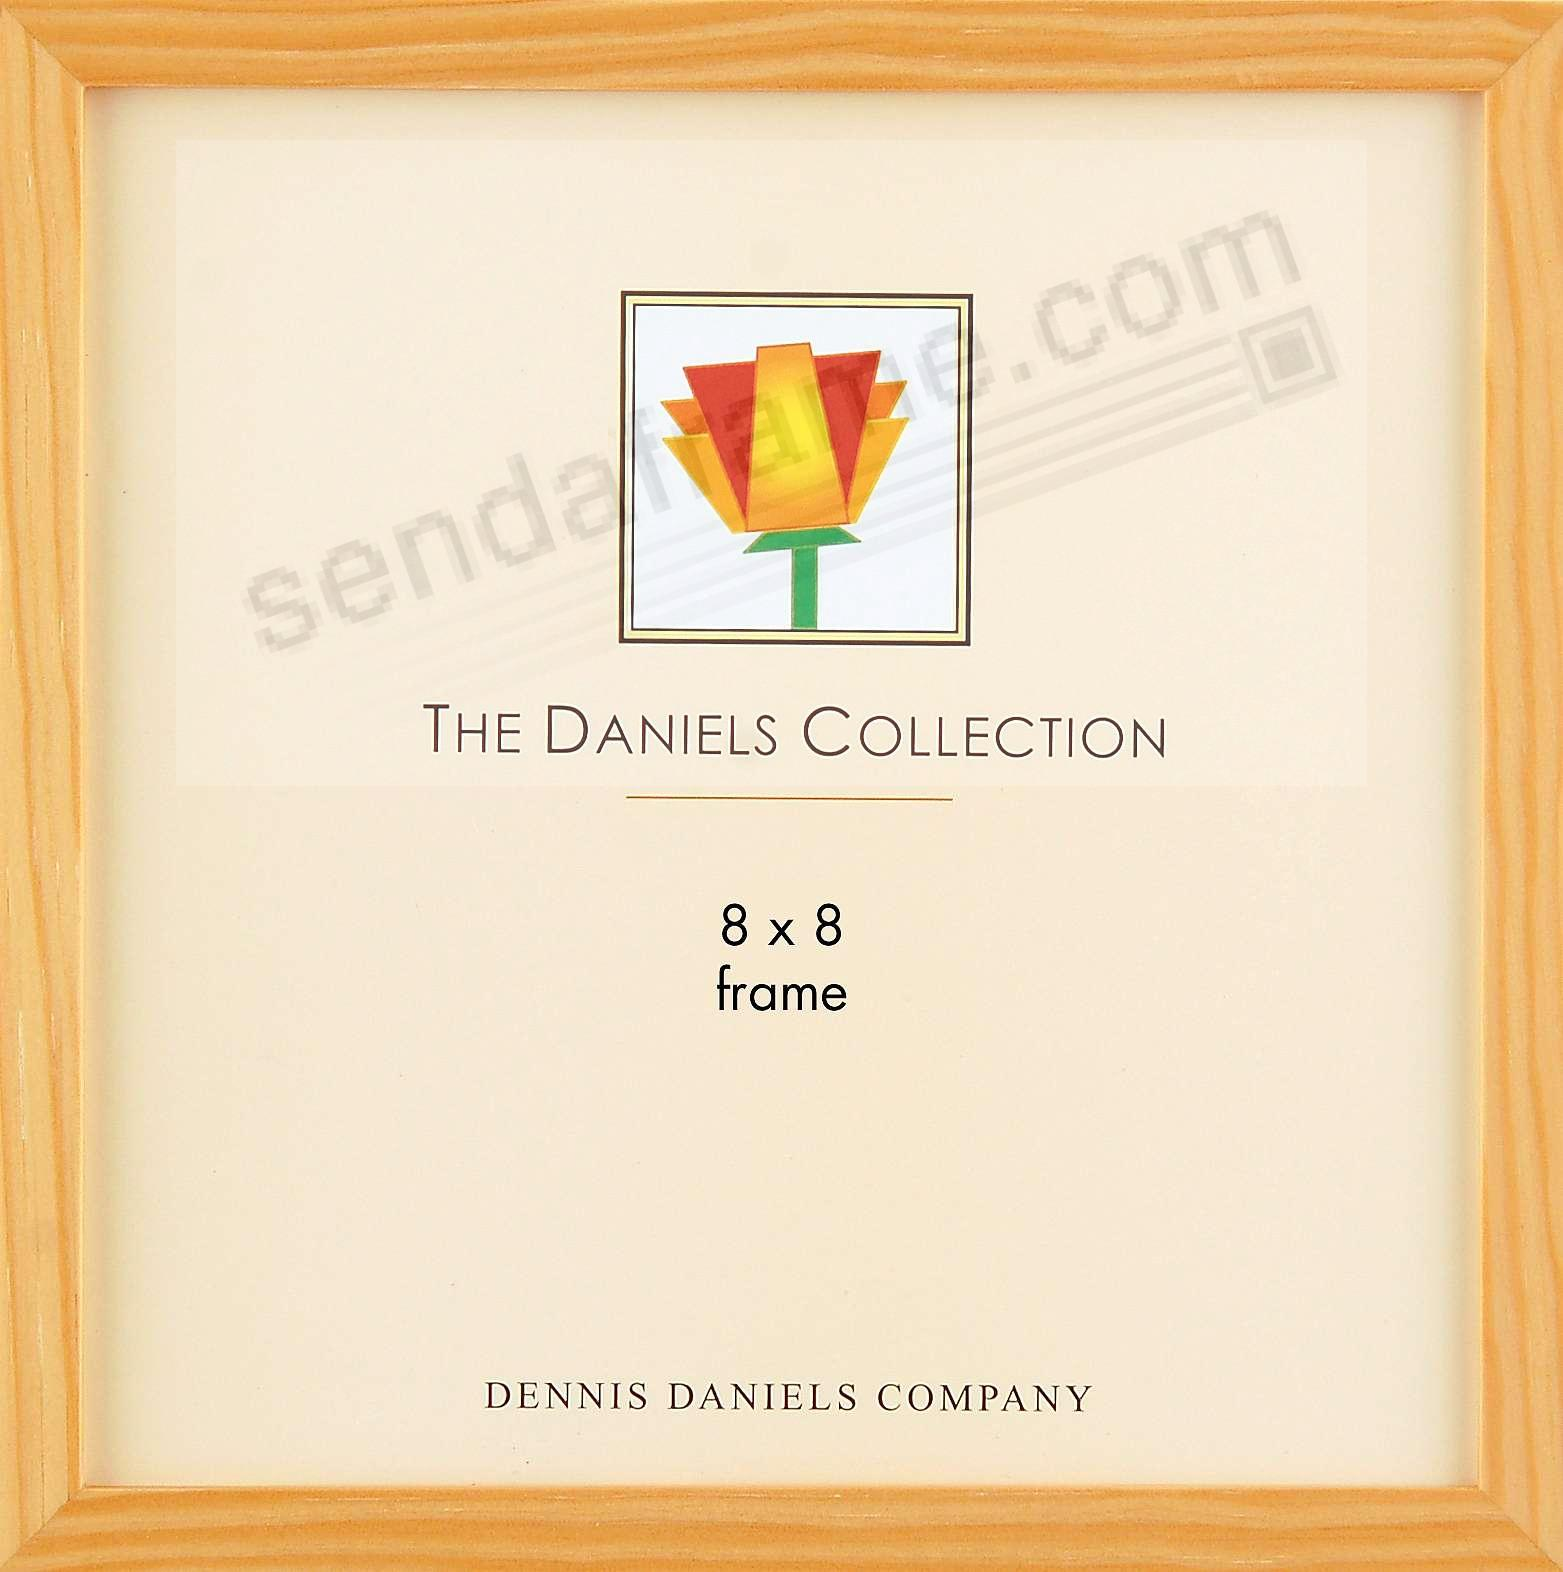 The Original DANIELS W41: Square Corner GALLERY WOODS Natural finish 8x8 frame by Dennis Daniels®